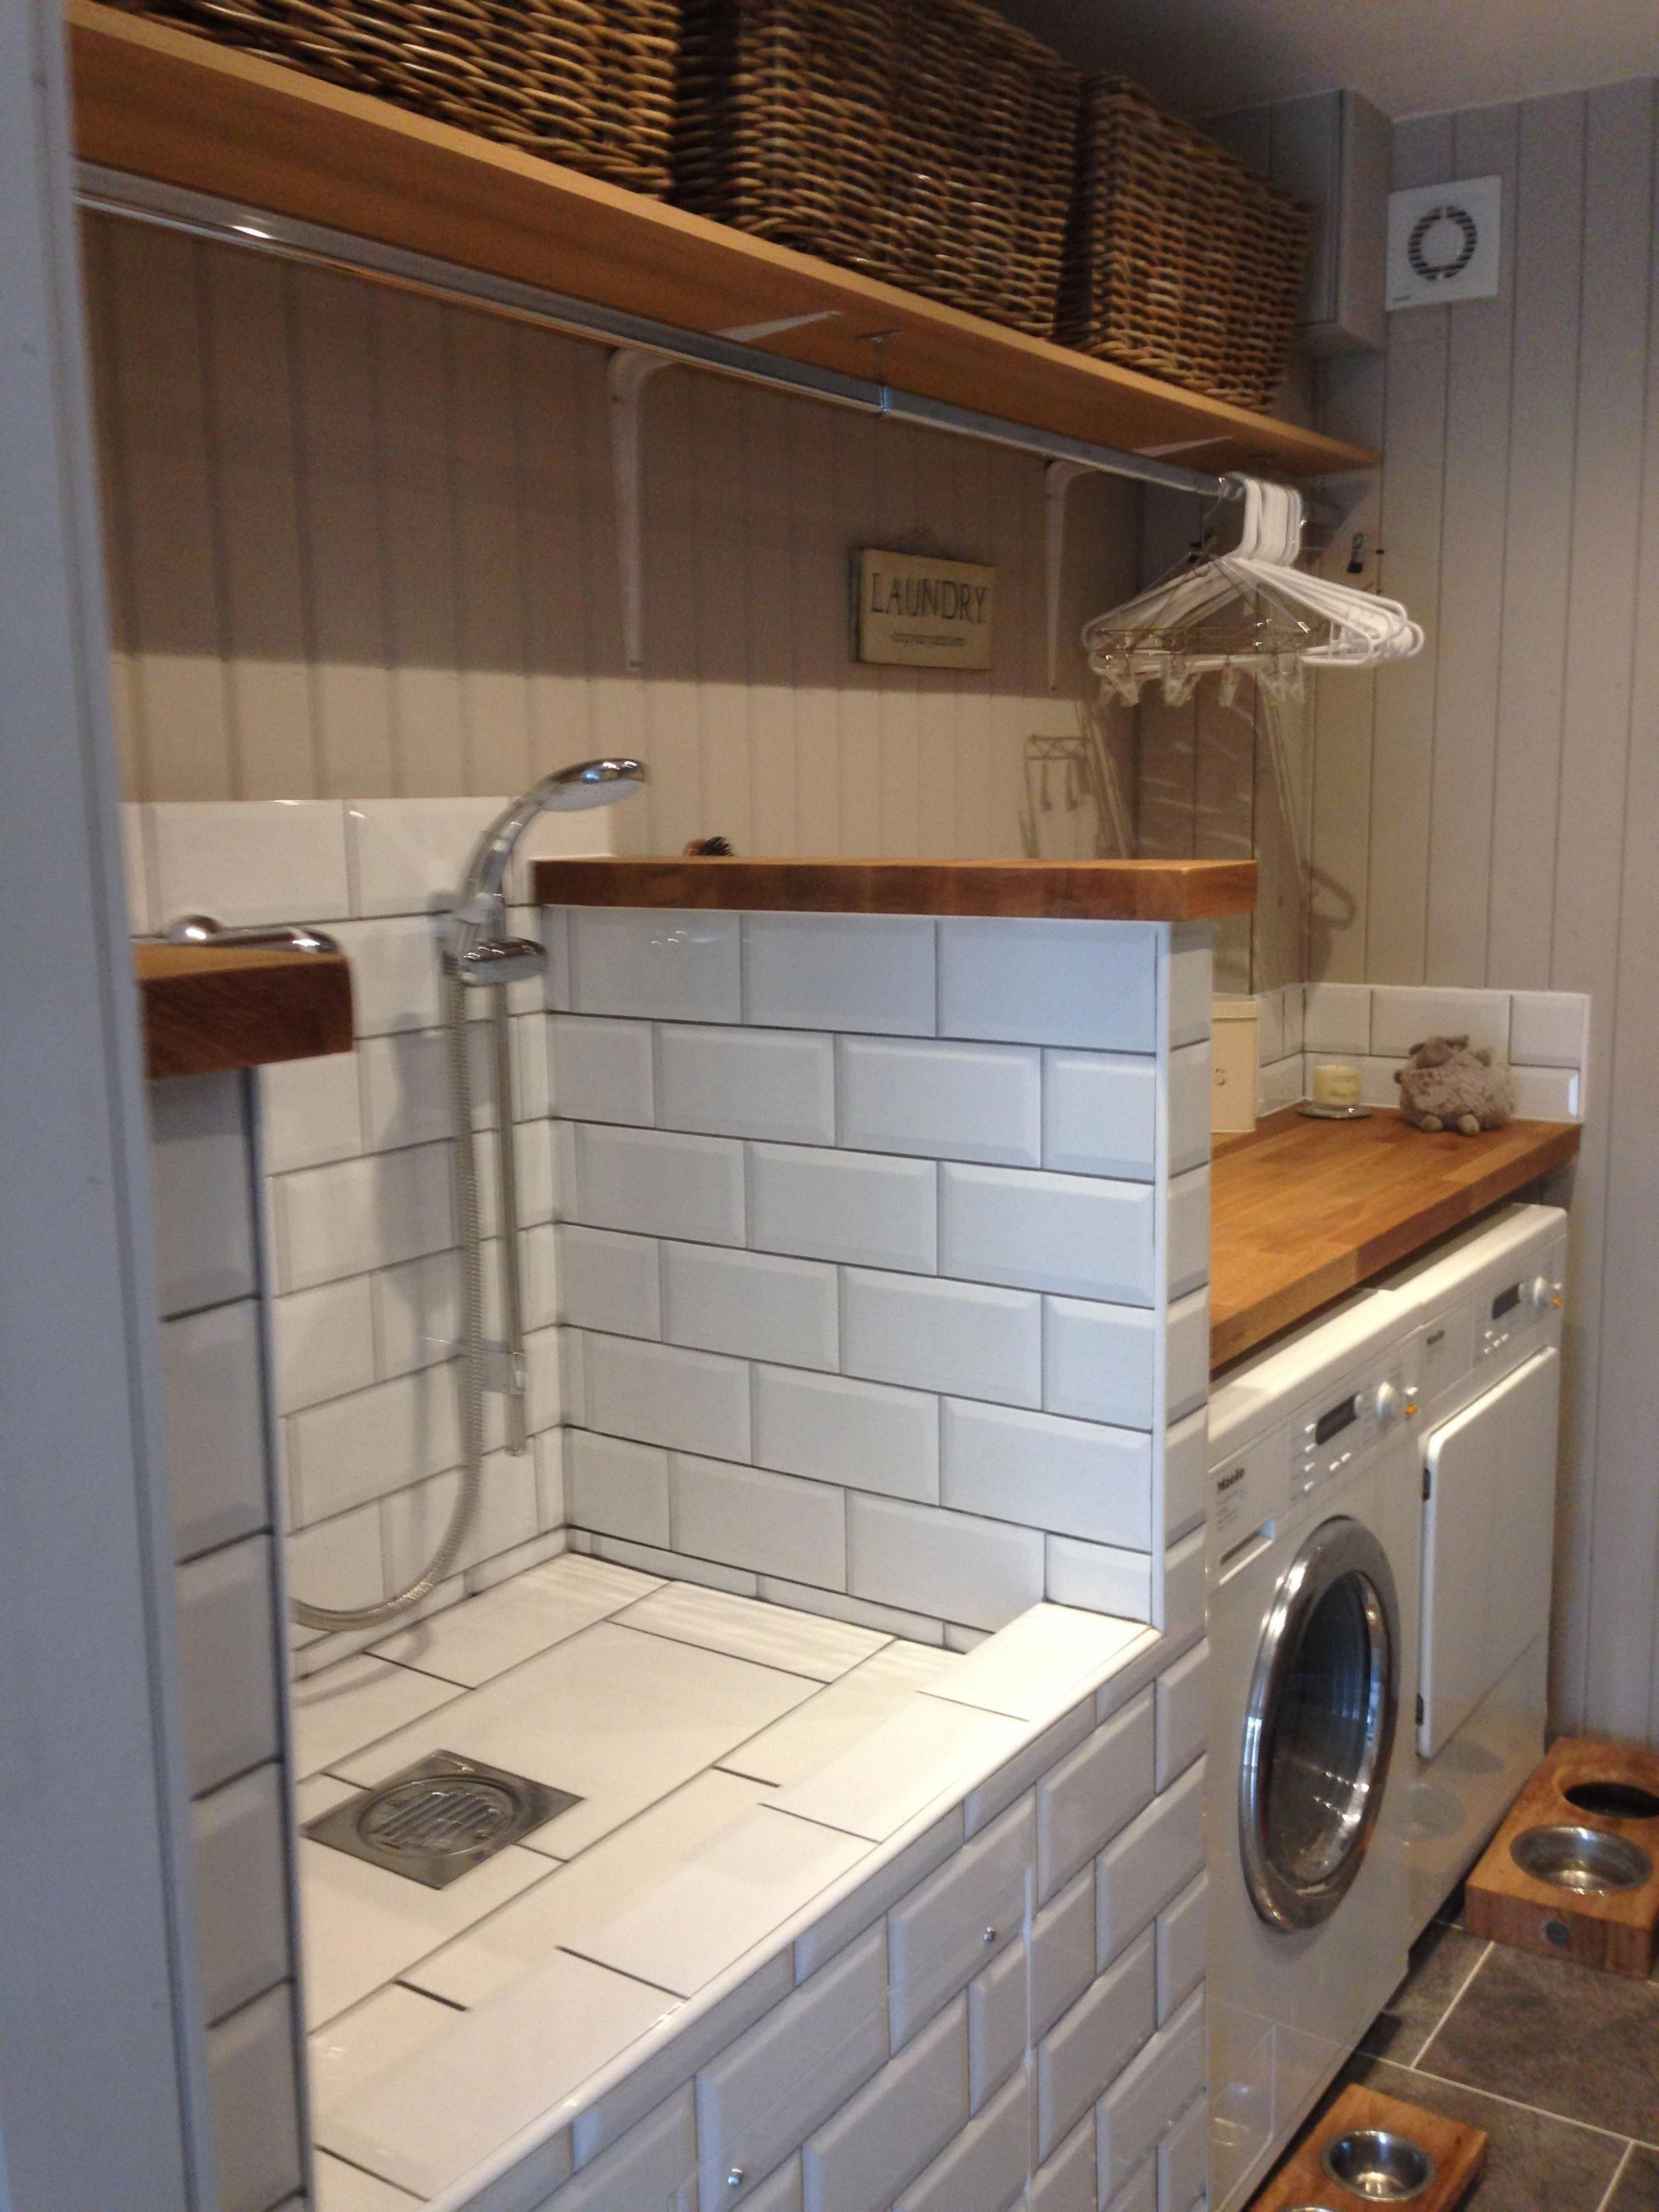 basement room open ceiling basement ideas easy ways to on effectively laundry room decoration ideas easy ideas to inspire you id=52647